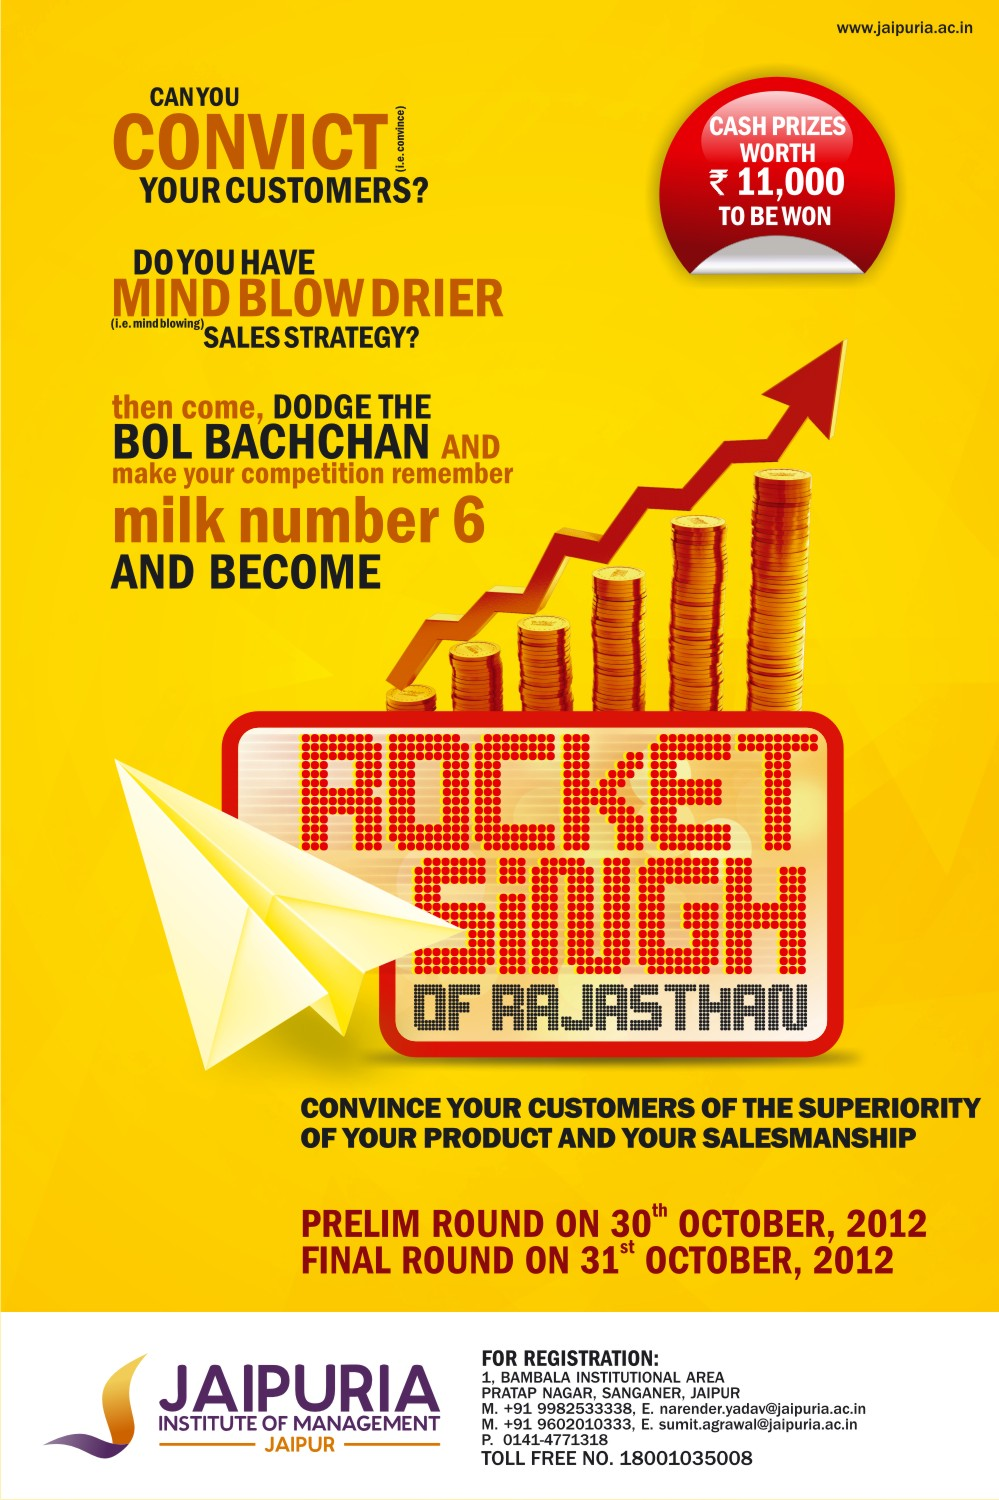 Rocket Singh Of Rajasthan